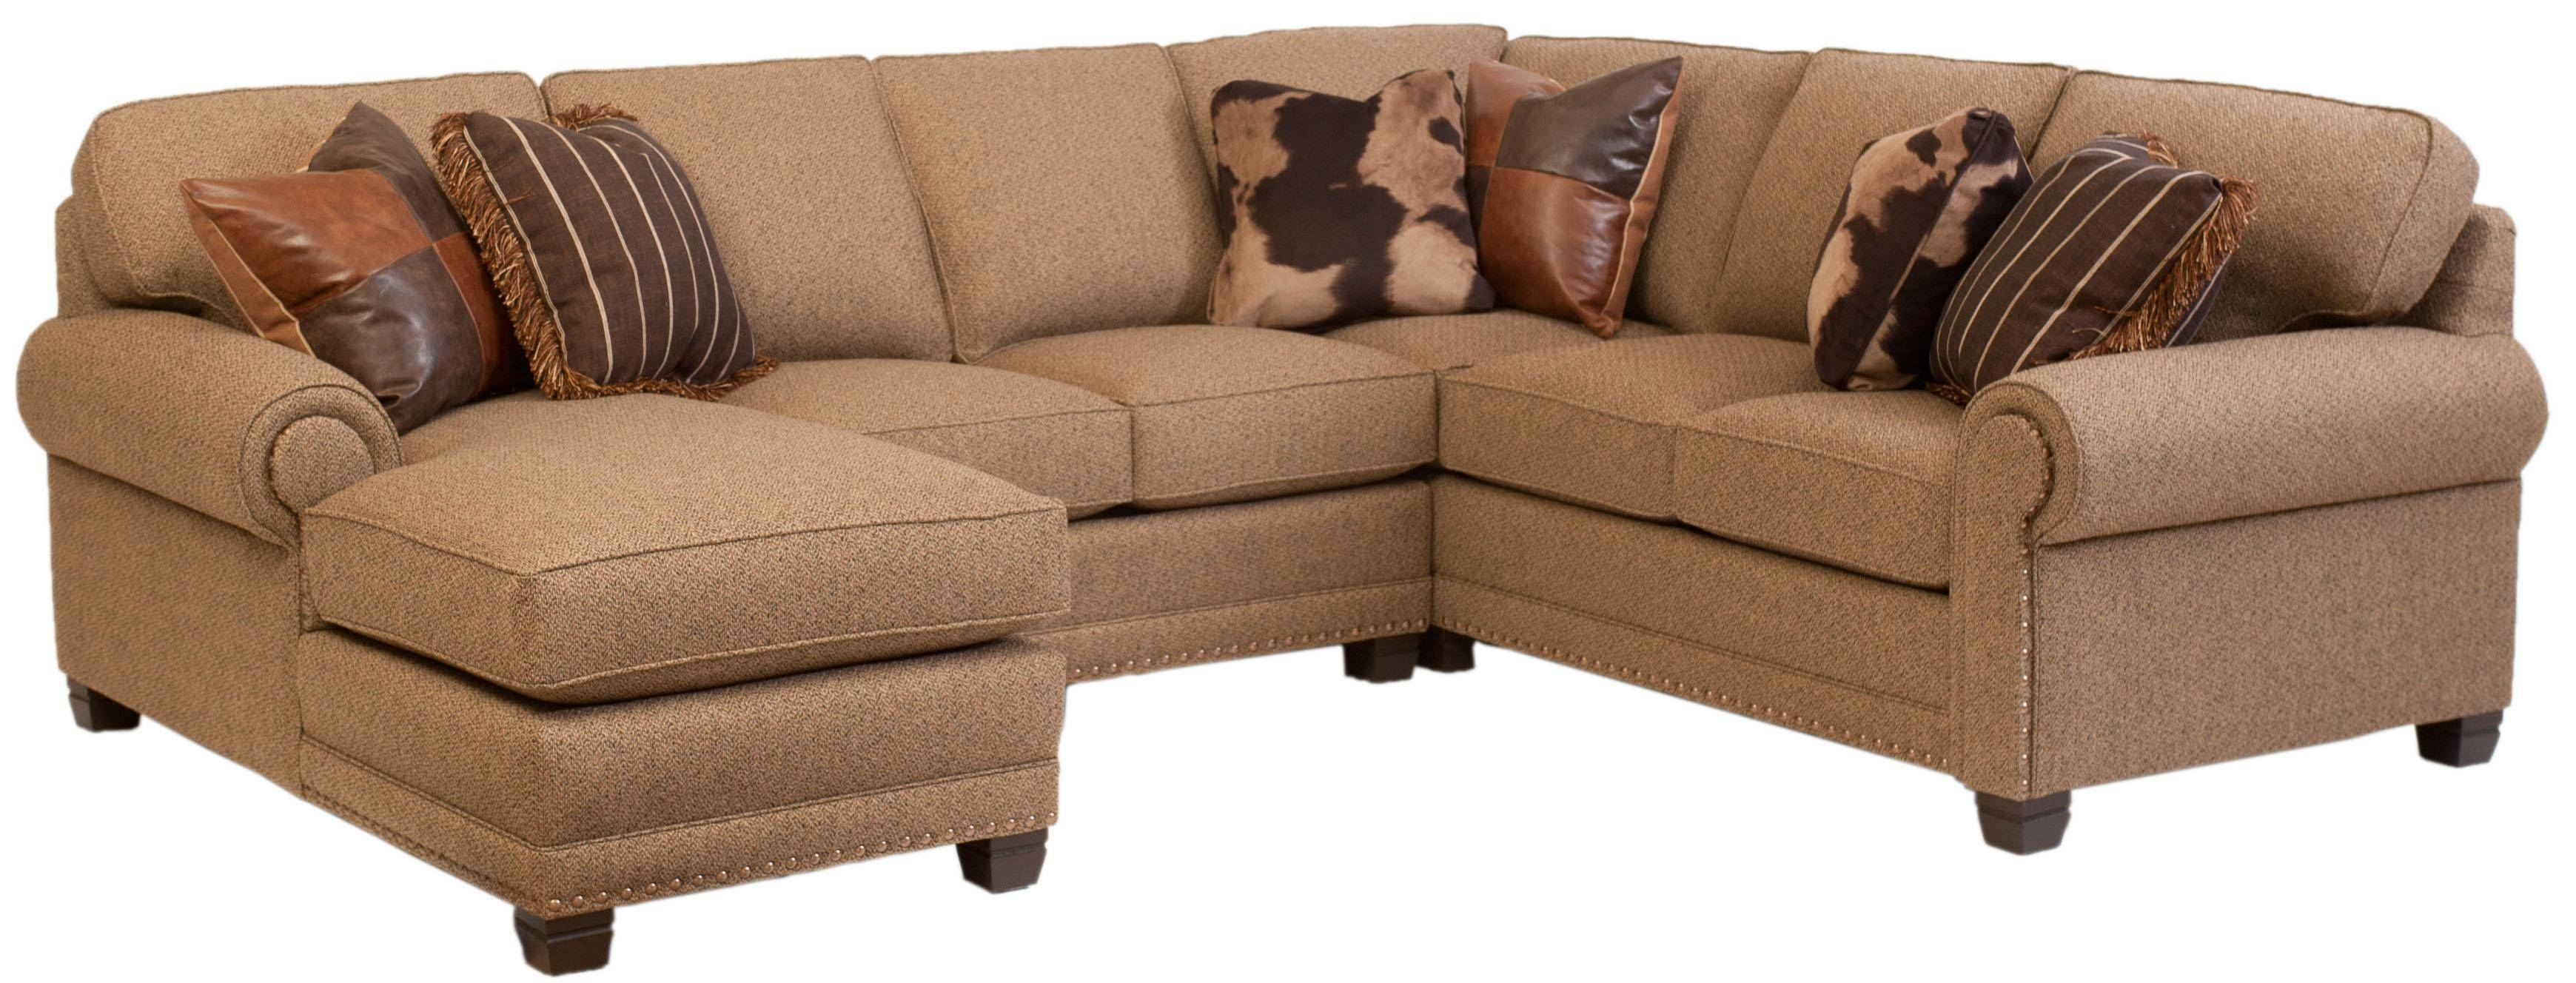 Elegant Fabric Sectional Sofas With Chaise 74 About Remodel Camo with regard to Elegant Fabric Sofas (Image 6 of 30)